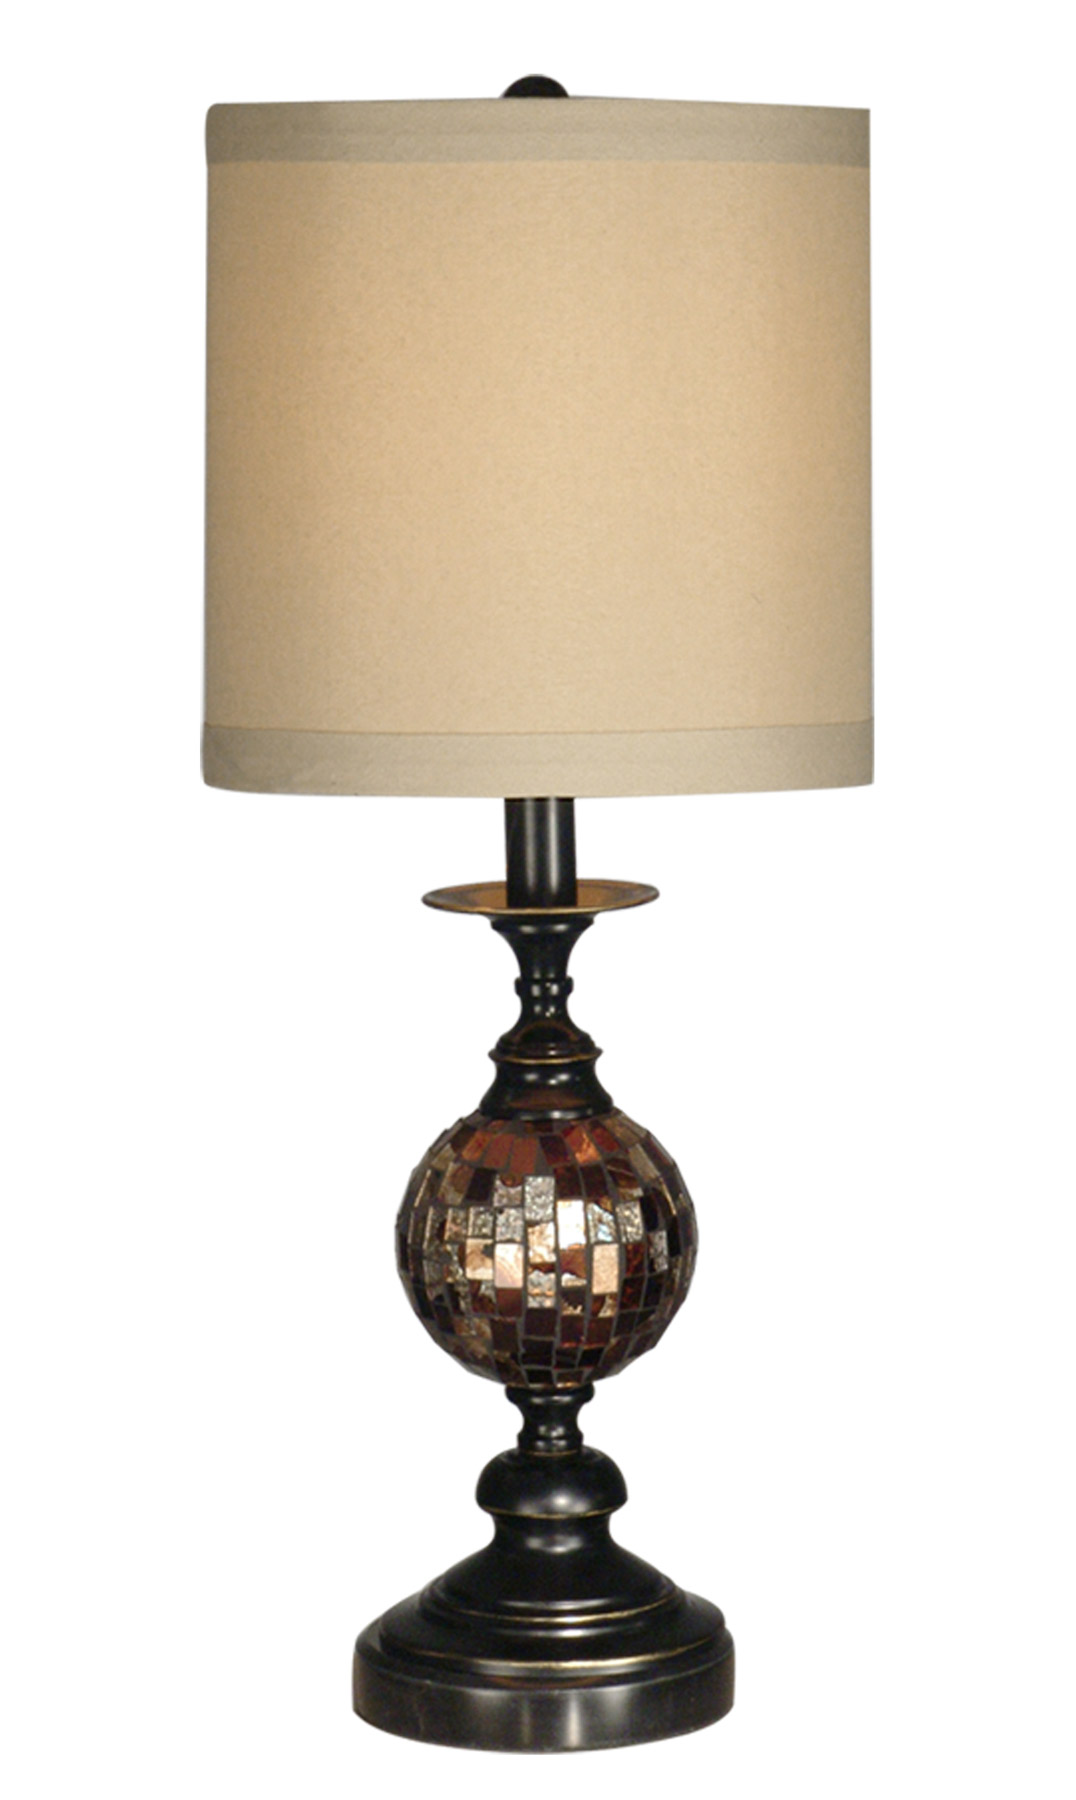 Dale Tiffany Pg10352 Mosaic Ball Table Lamp